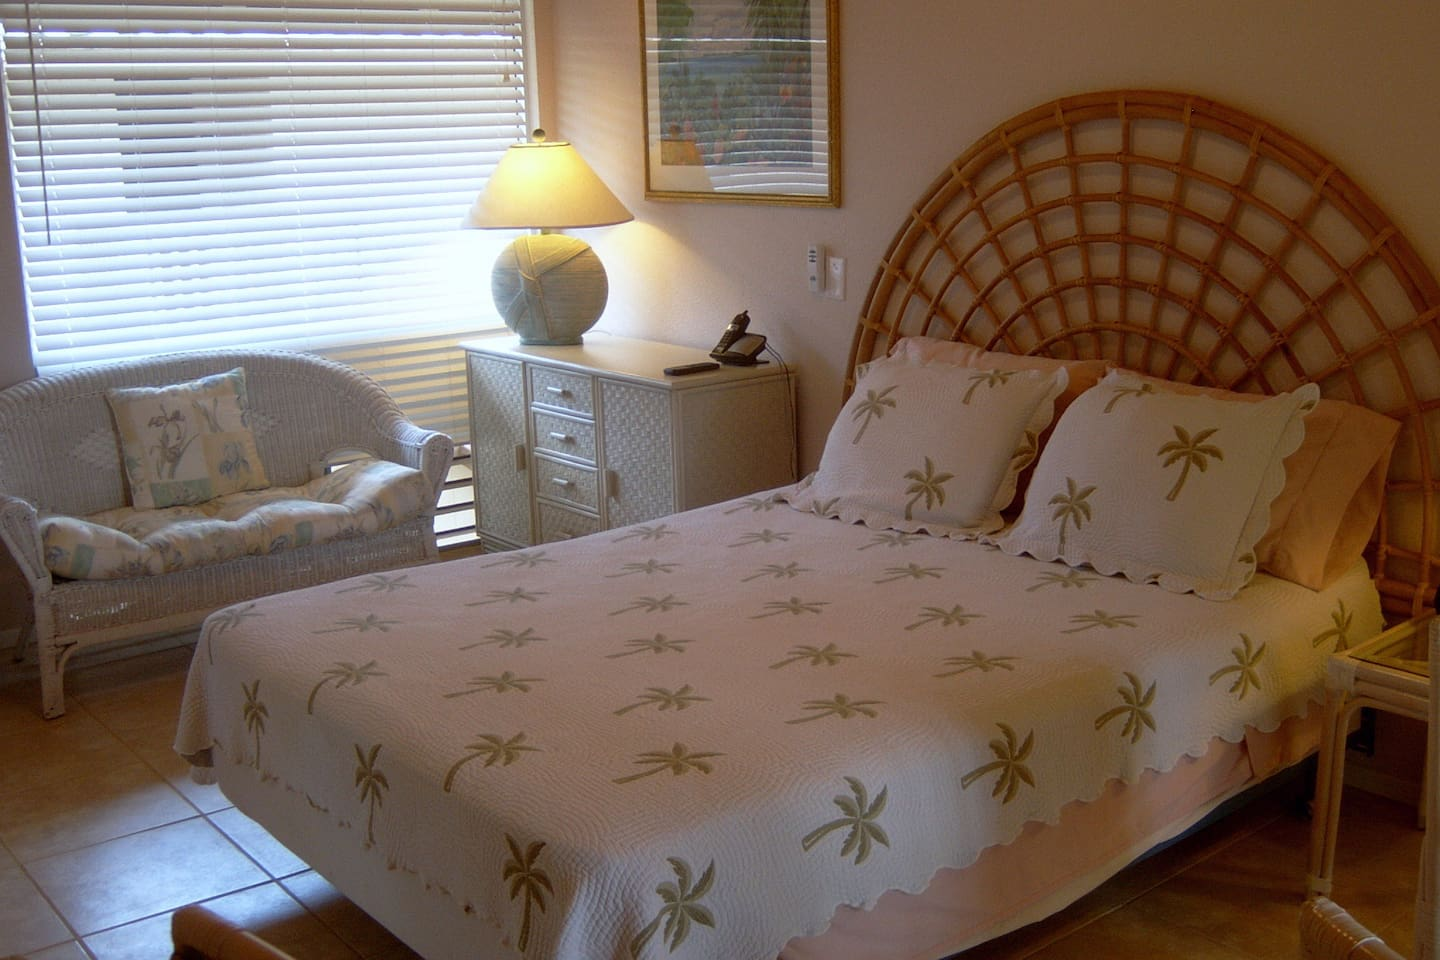 Bed, loveseat and dresser